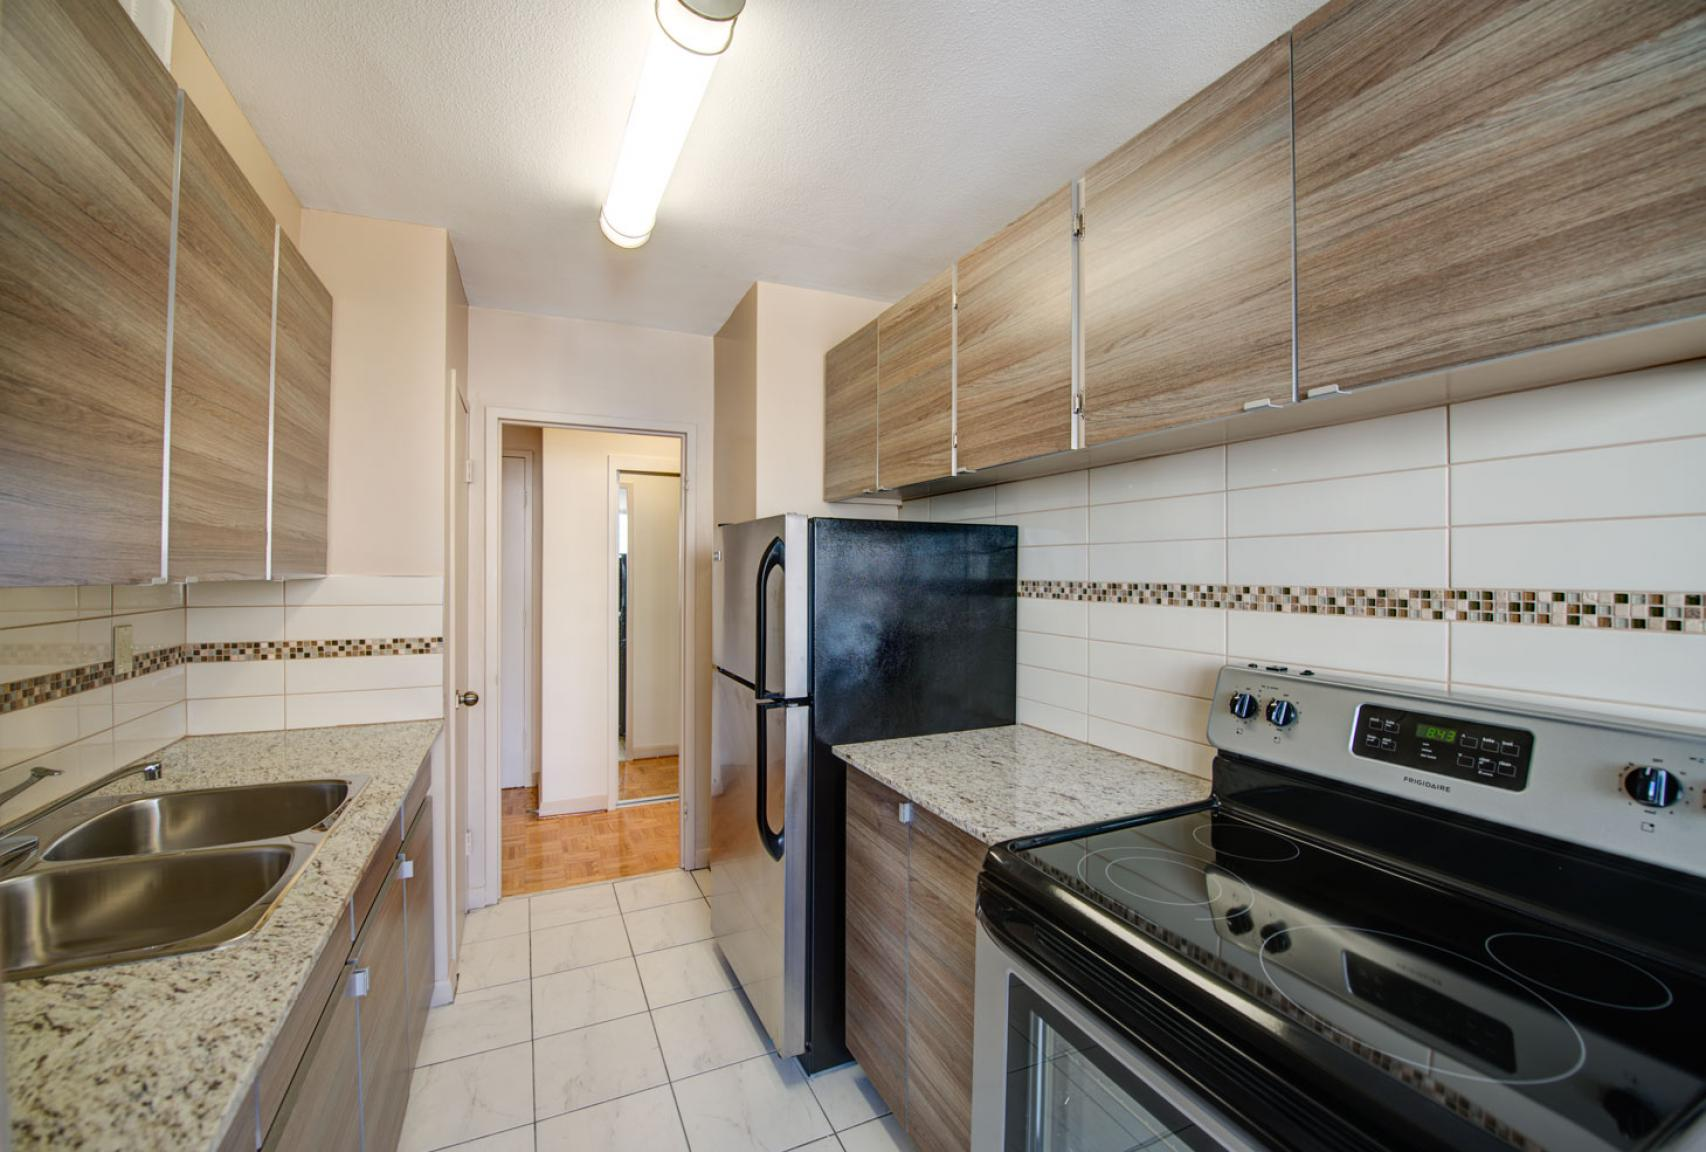 1 bedroom Apartments for rent in Toronto at Dunfield Tower - Photo 13 - RentersPages – L138879